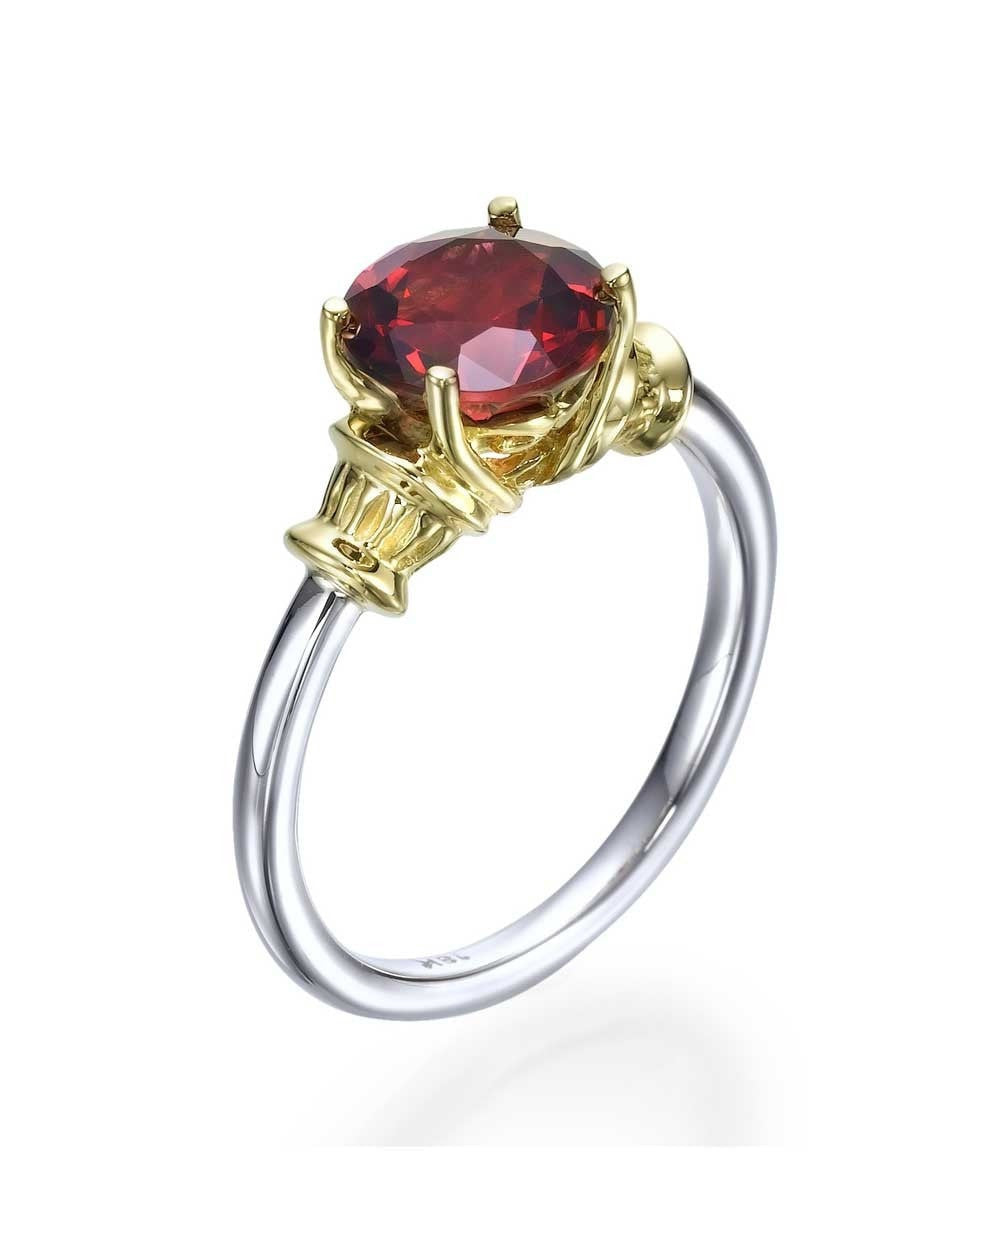 Gemstone Rings Vintage Two-tone White & Yellow Gold Red Garnet Gemstone Ring